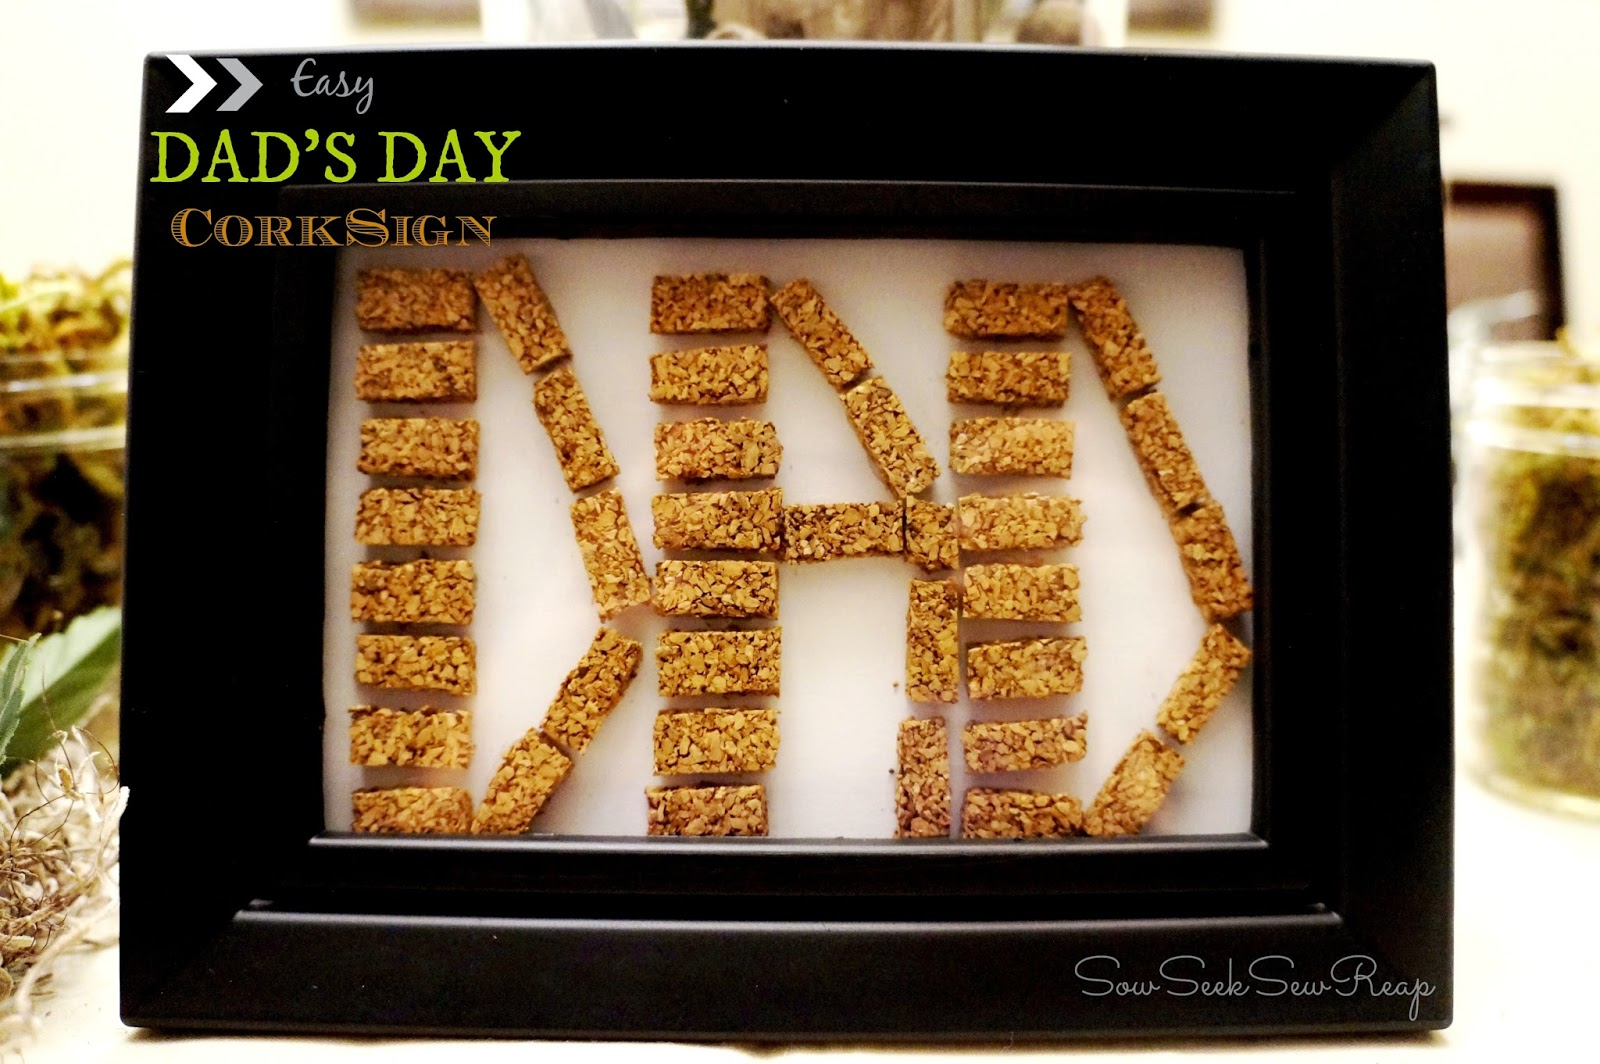 dad's day sign, cork sign, dad's day cork sign